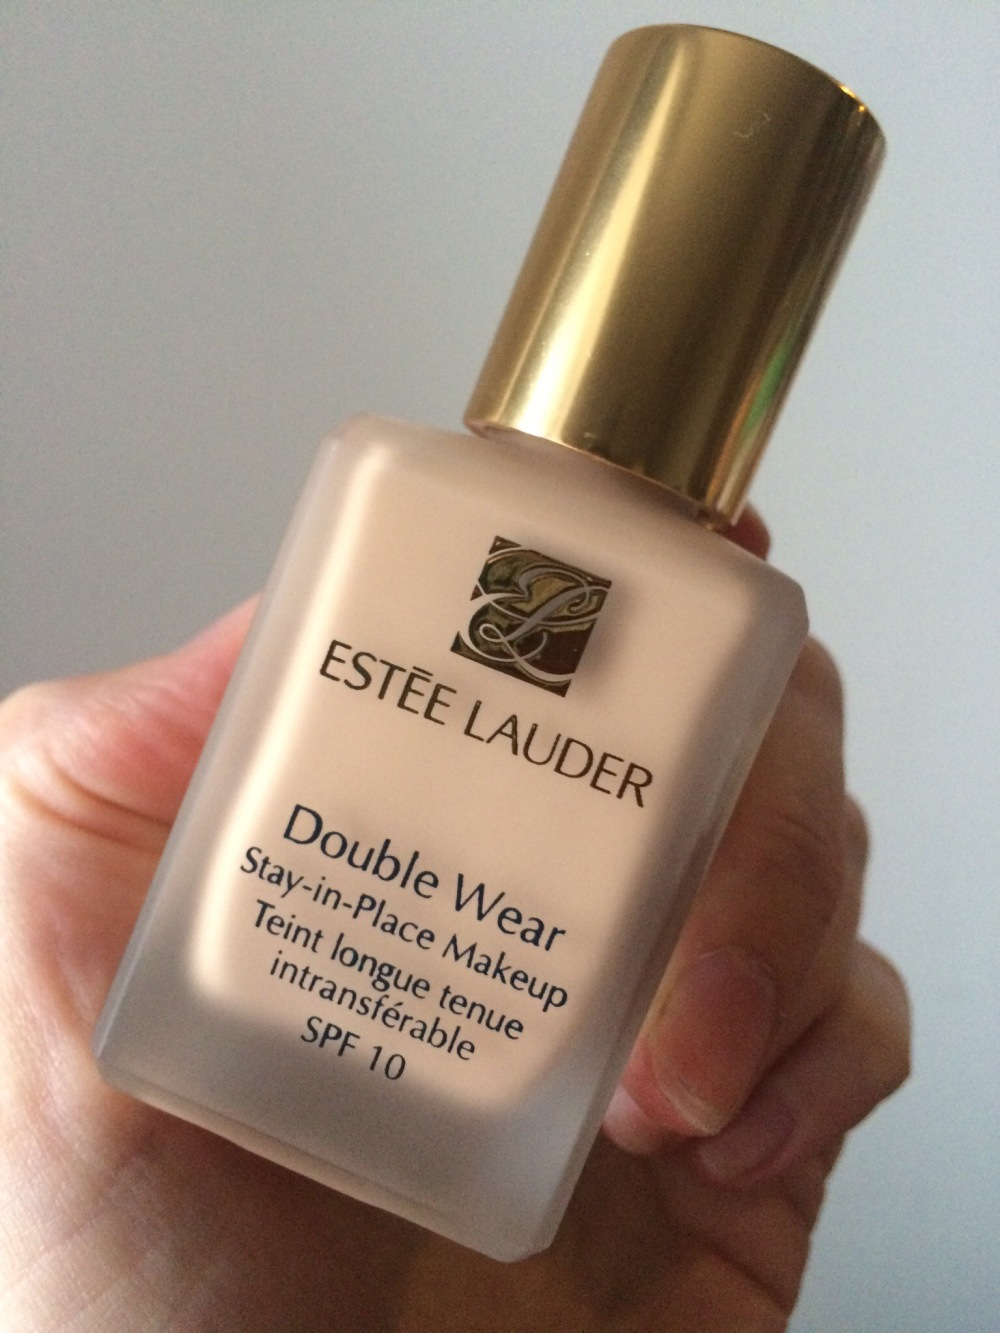 Spend or Save beauty tag Doublewear foundation Estée Lauder